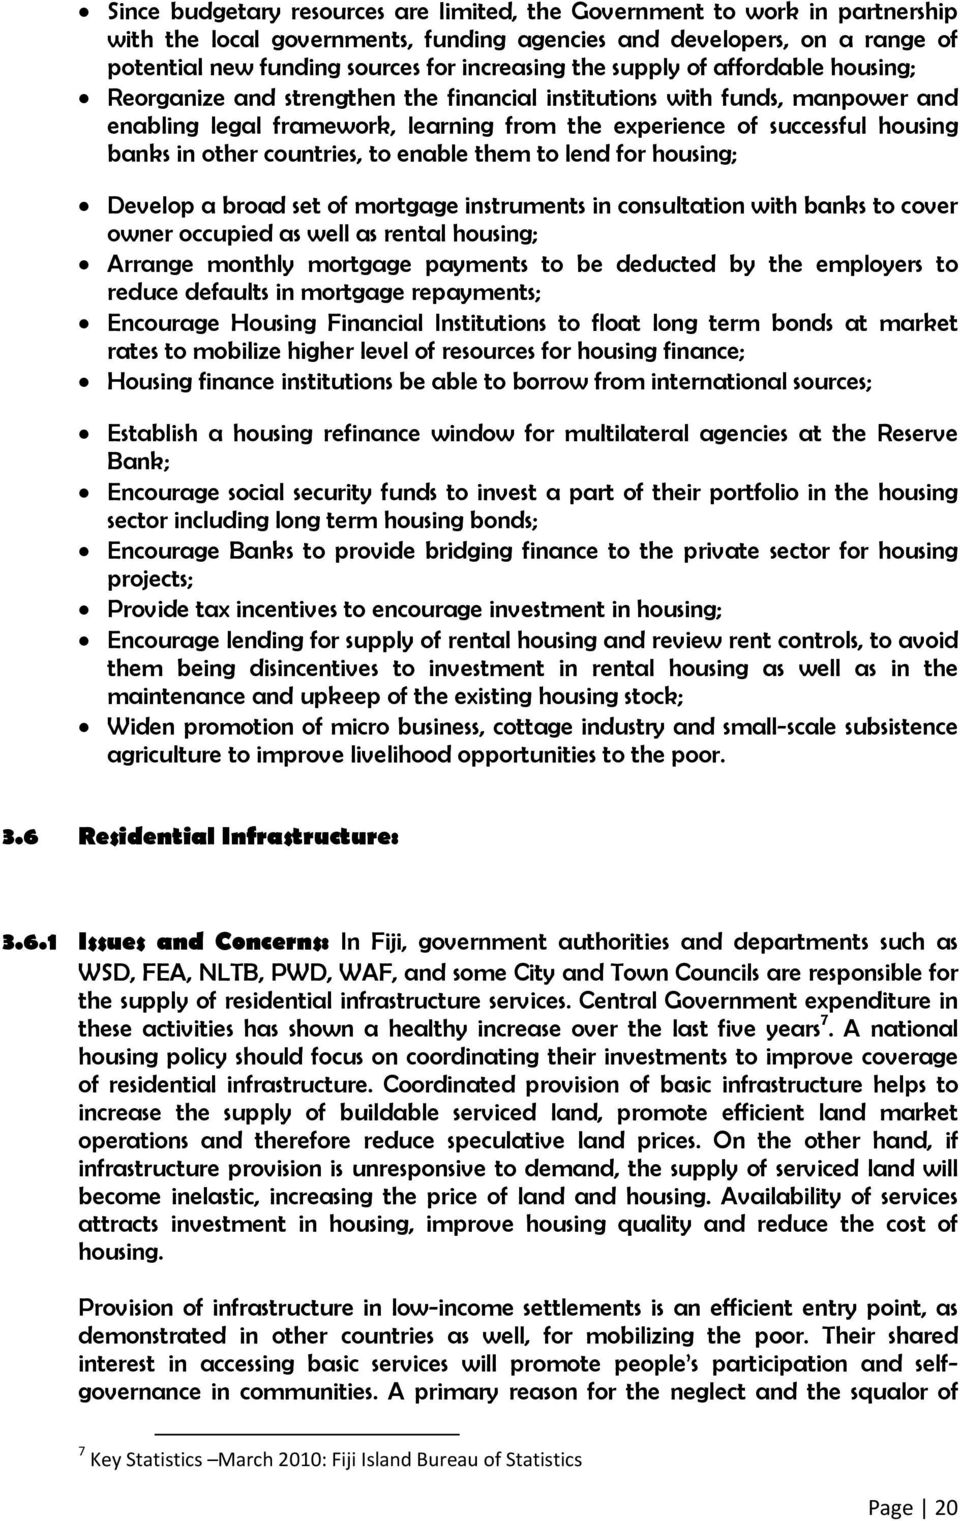 Republic of Fiji The National Housing Policy - PDF